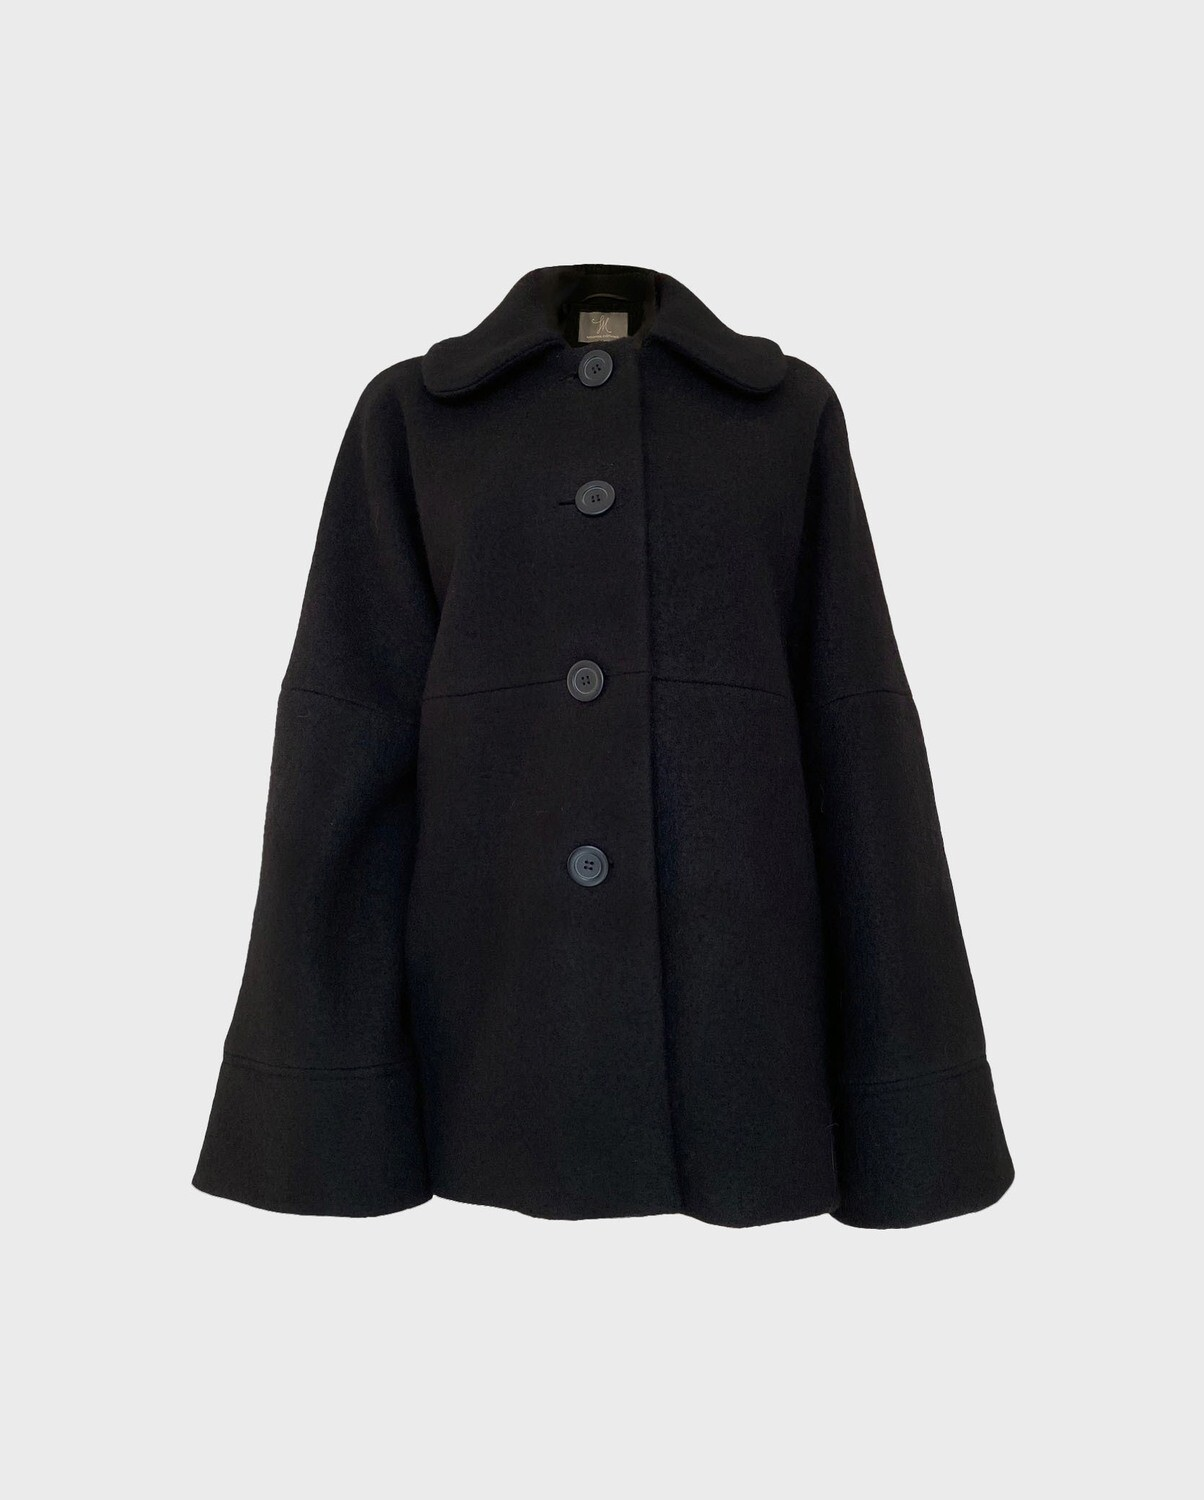 A-LINE ROUND COLLAR WOOL COAT IN BLACK